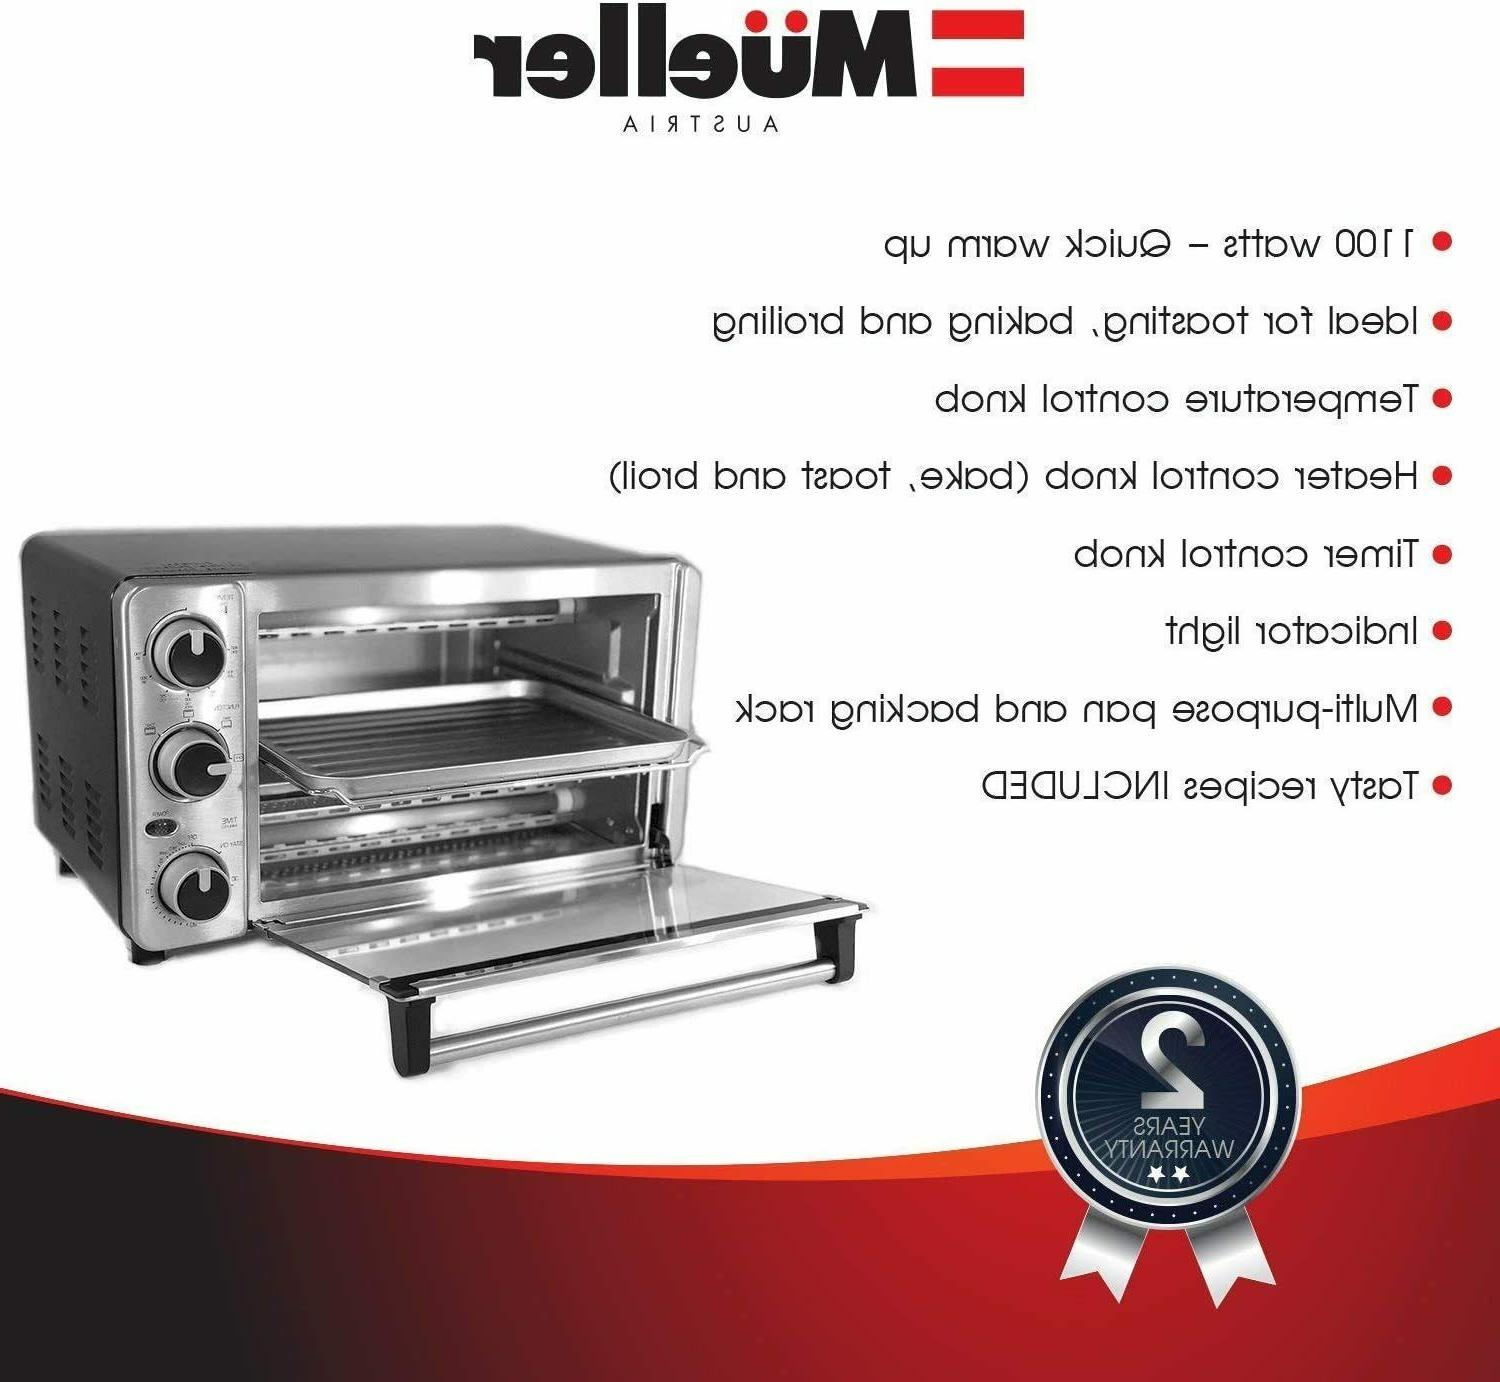 Toaster Oven 4 Slice, Multi-function Steel with